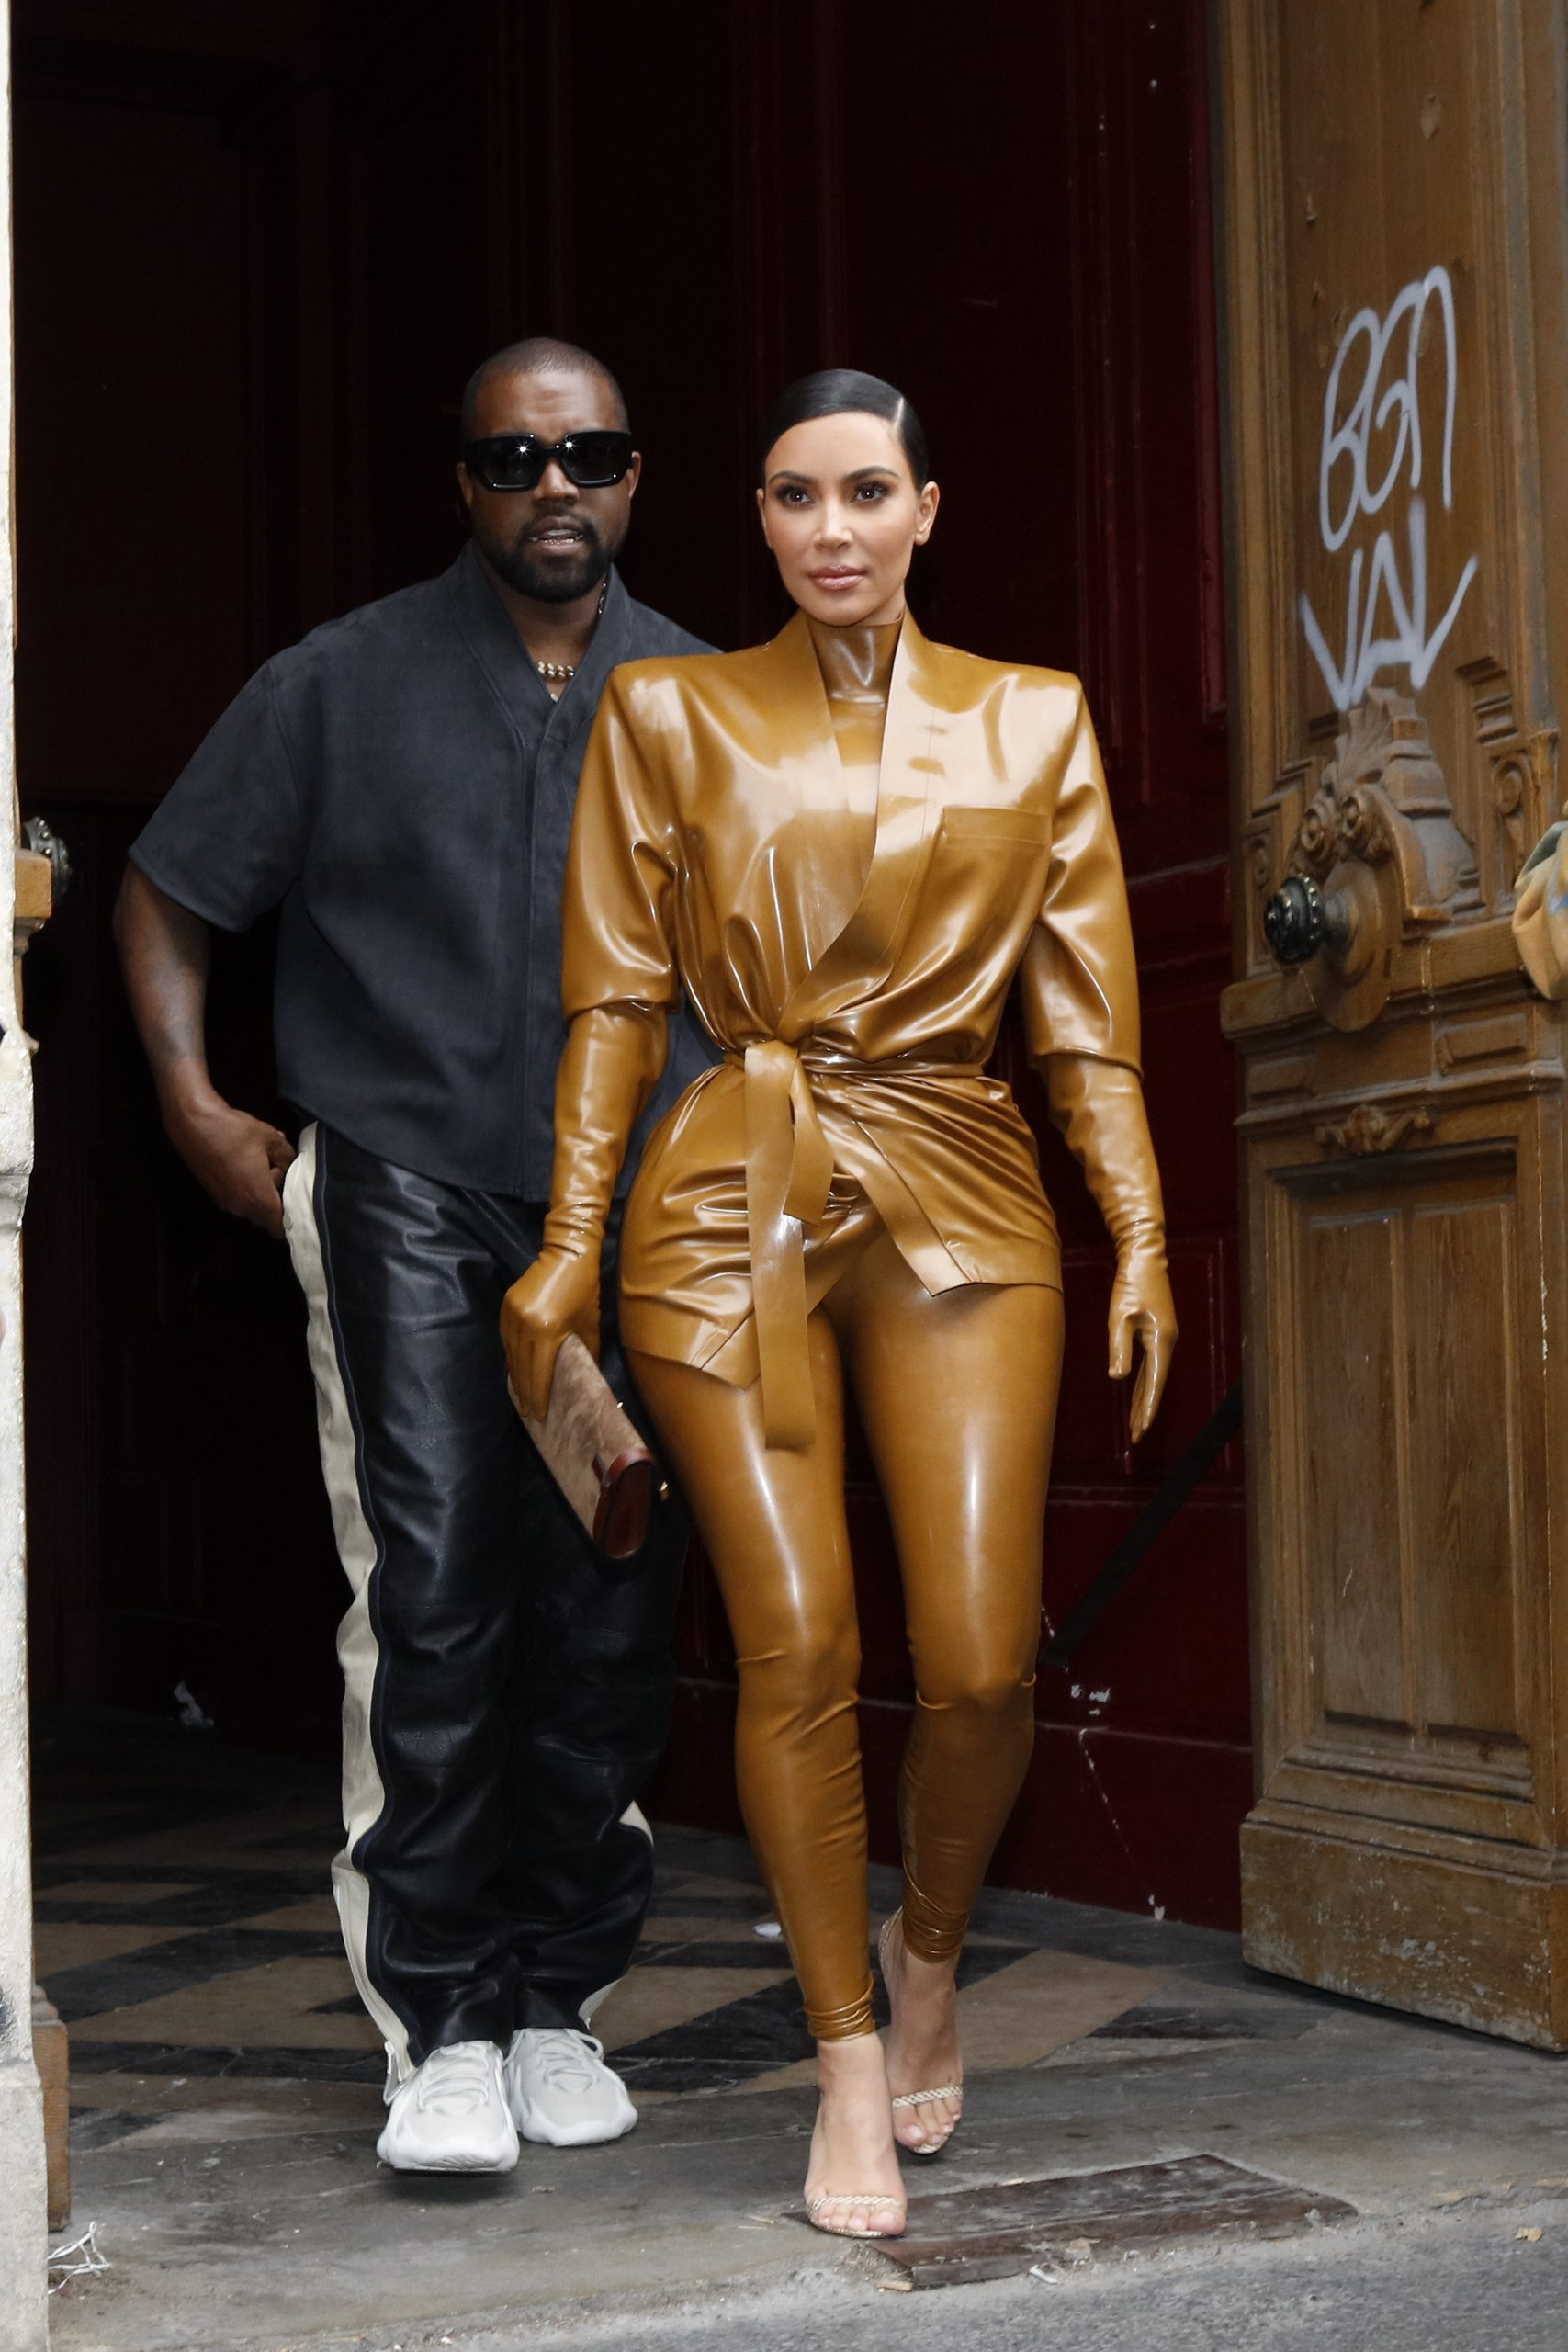 Kim Kardashian and Kanye West at the Theatre des Bouffes du Nord to attend Kanye West's Sunday Service on March 01, 2020 in Paris, France.